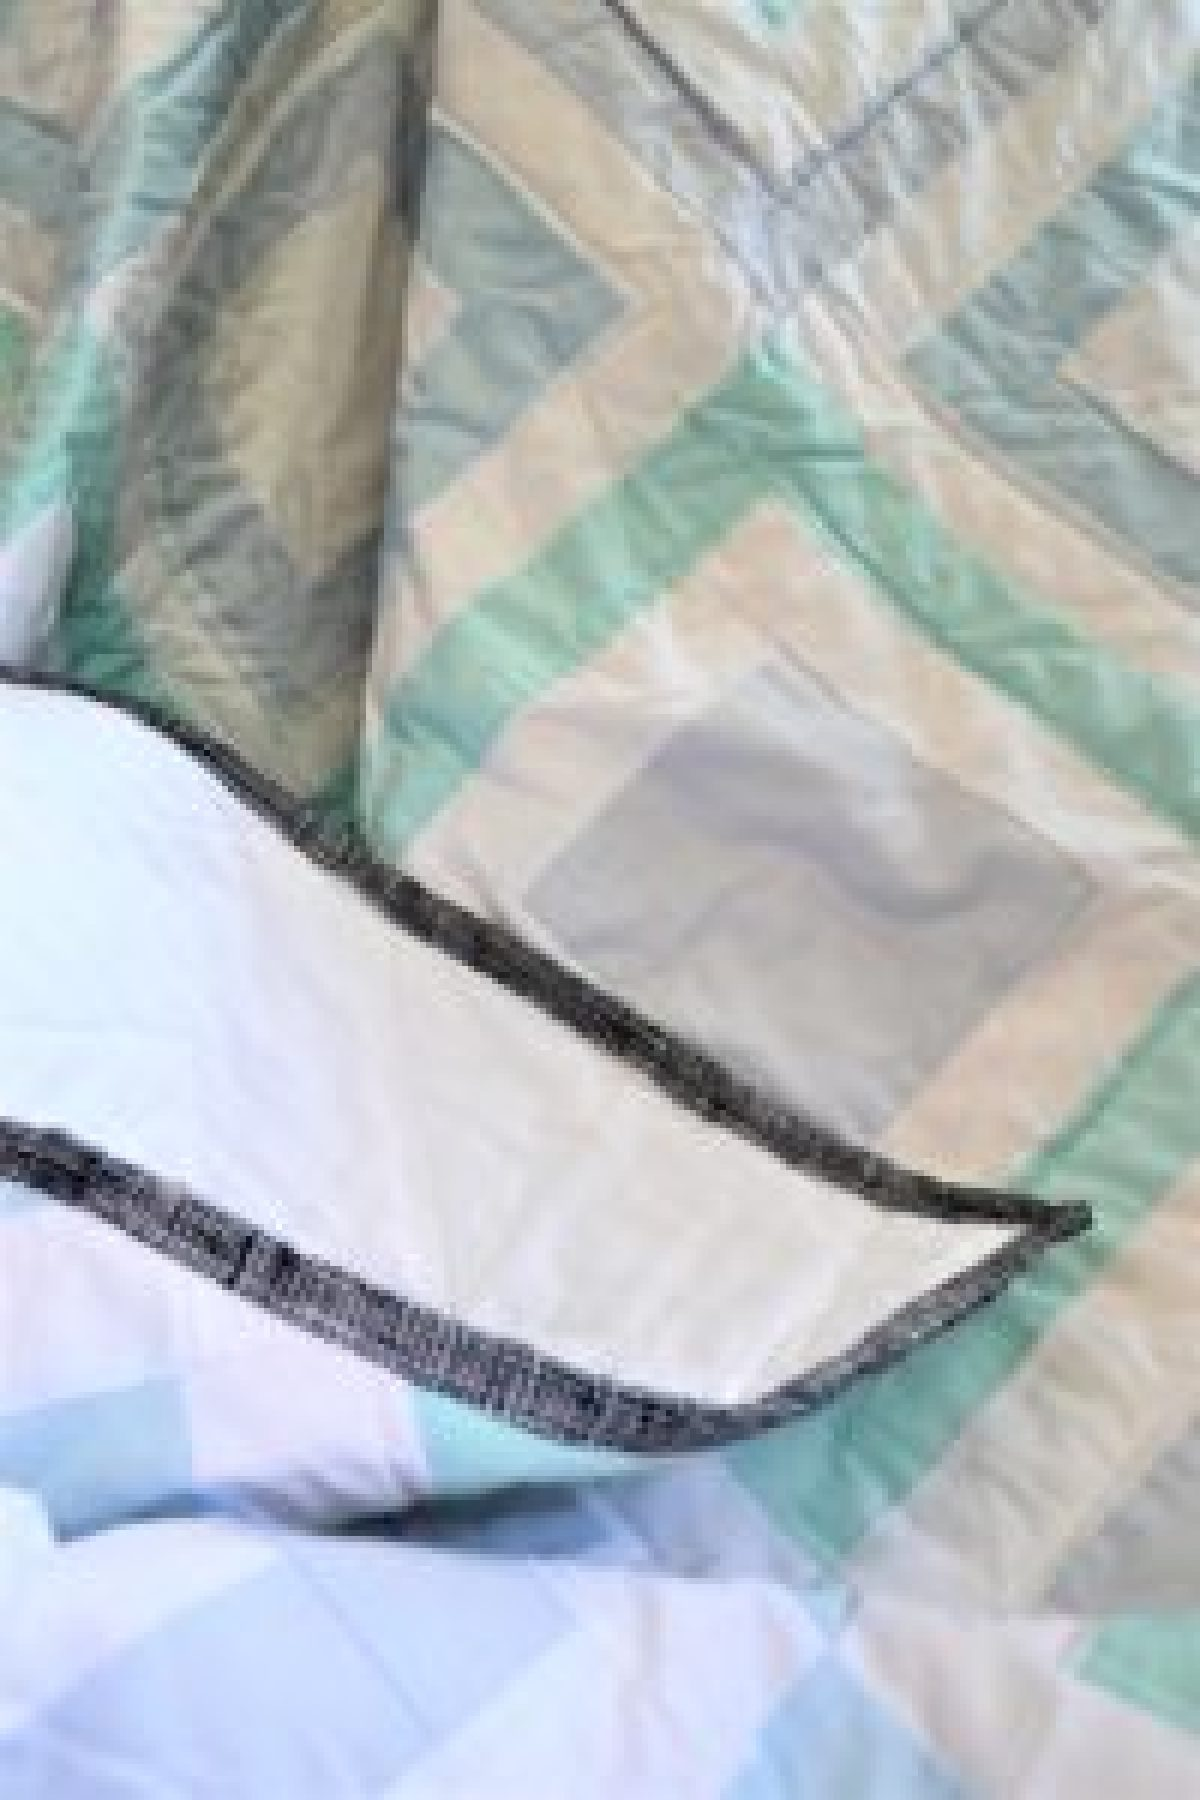 How To Bind A Quilt - Using the least amount of binding fabric - Tutorial!